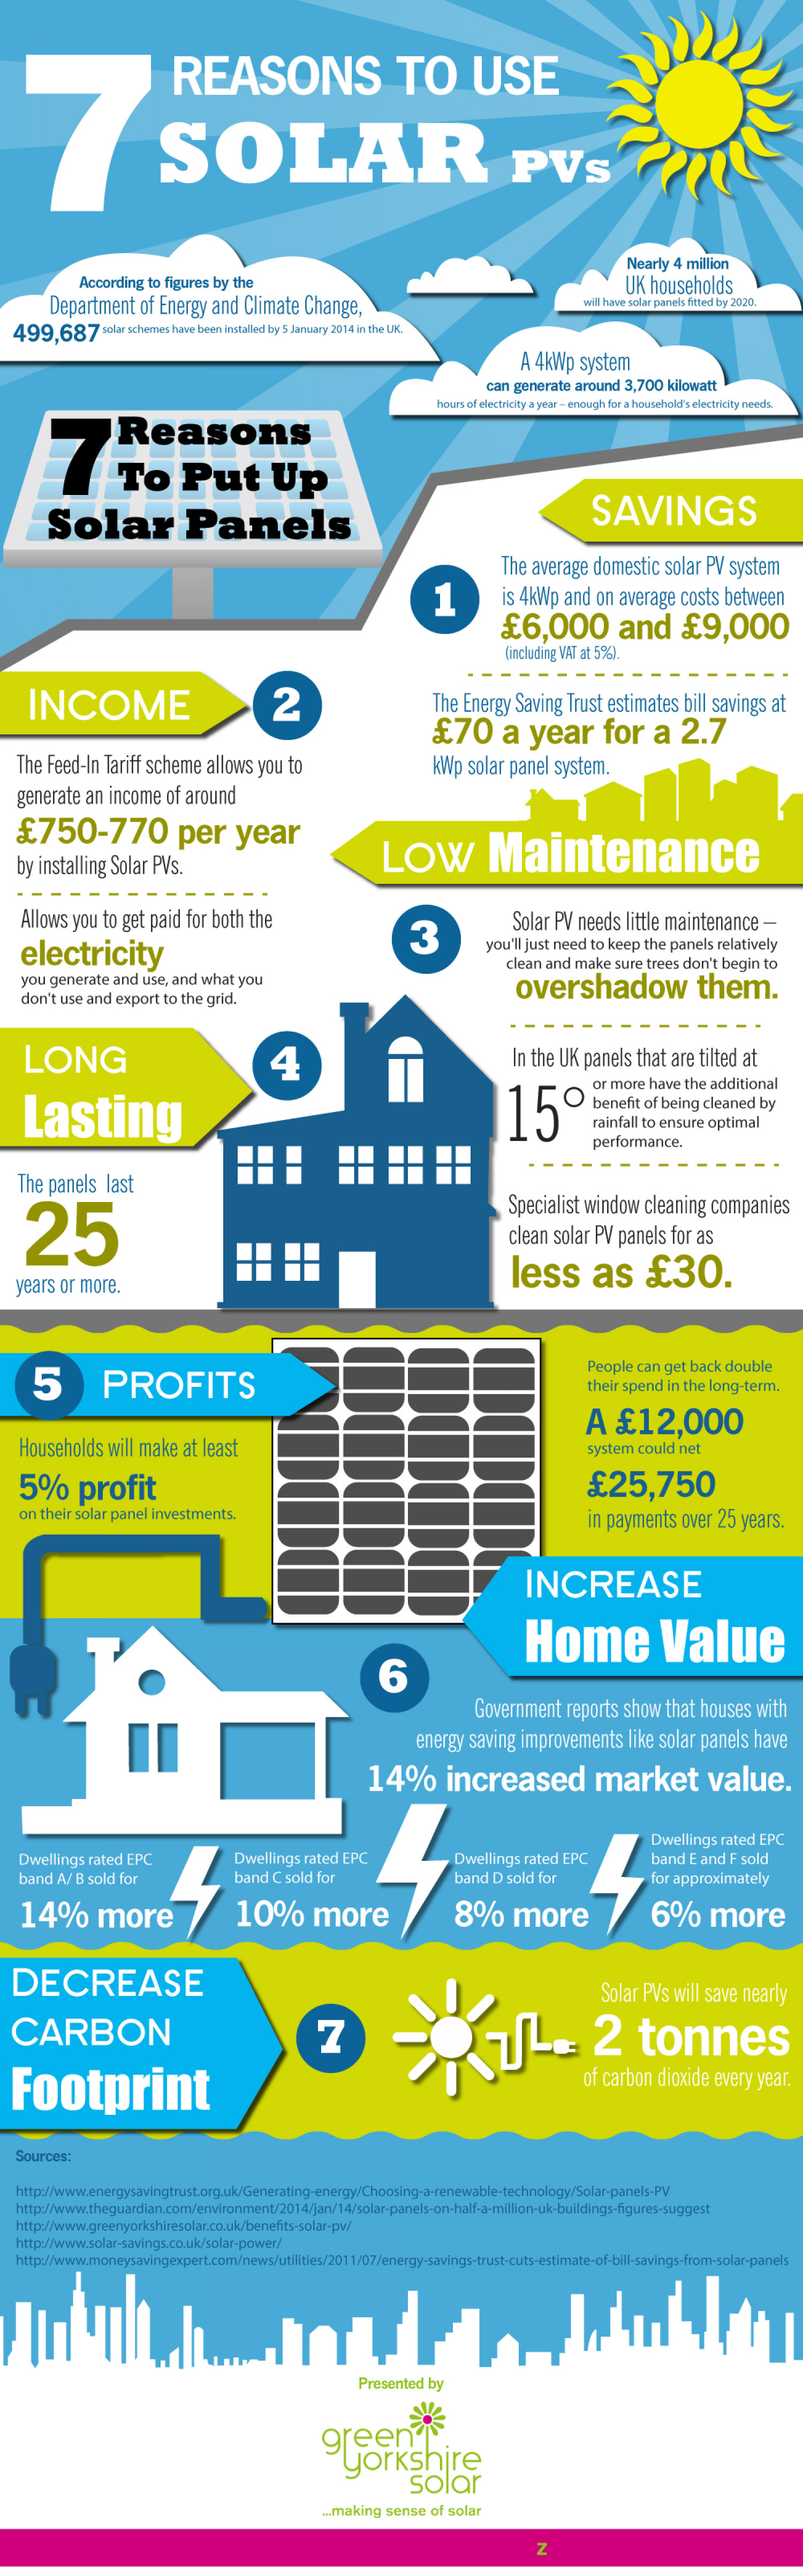 7 Reasons To Use Solar PVs Infographic